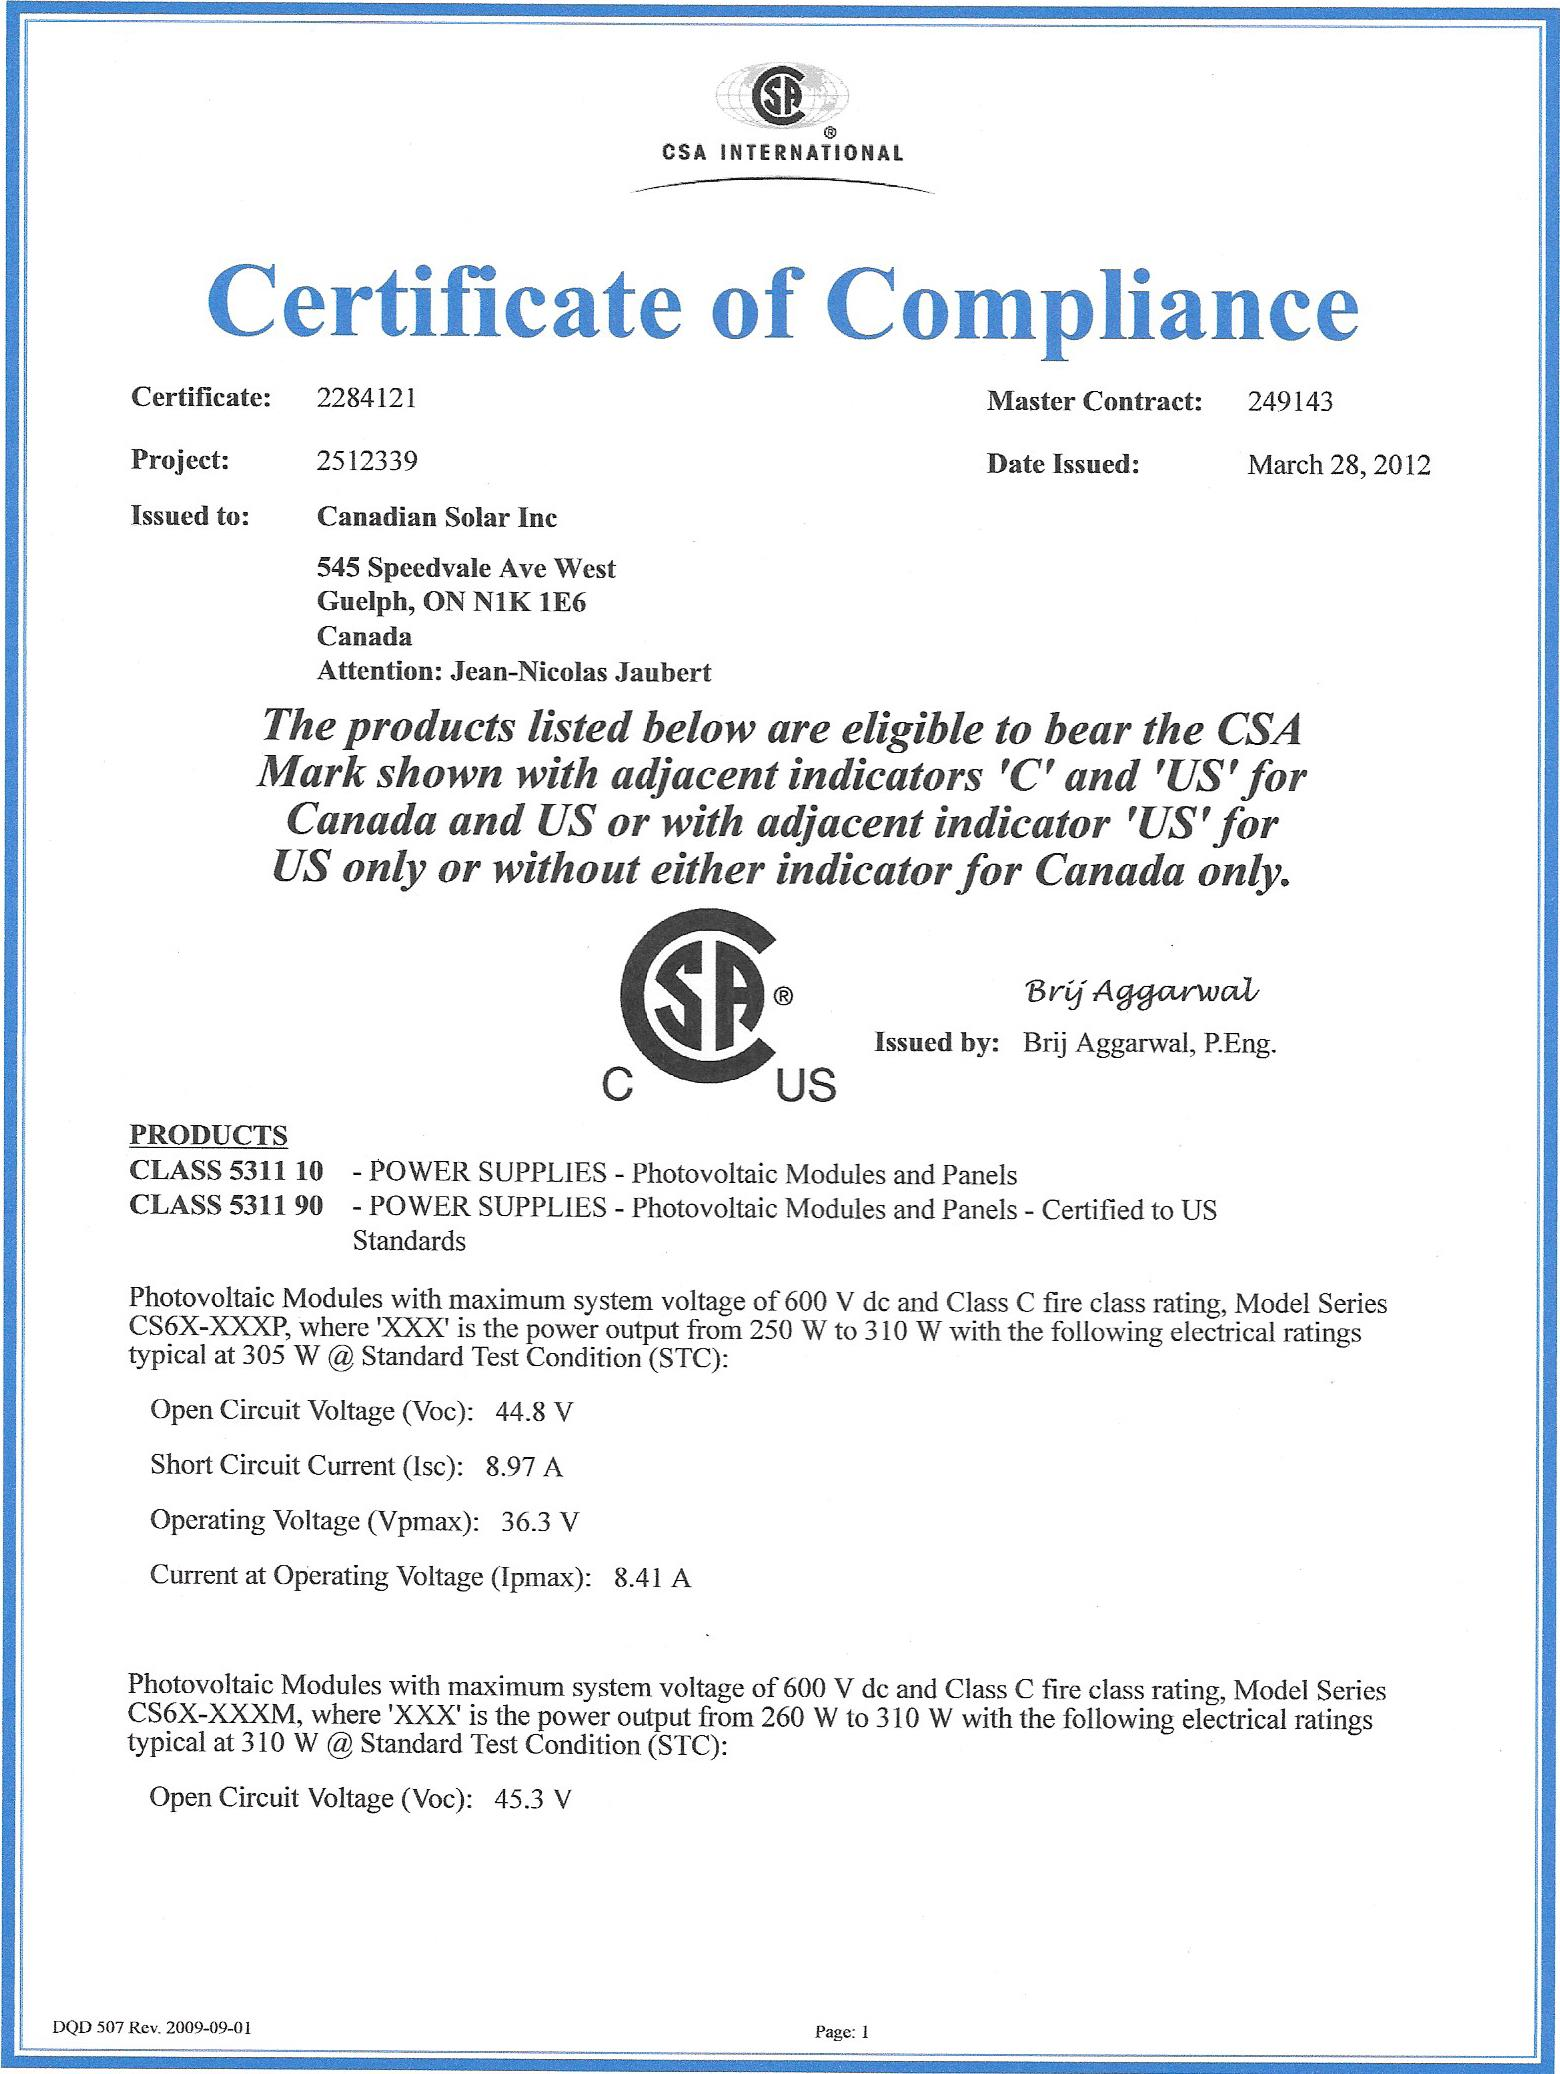 Flint hills renewable energy efficiency cooperative inc certificate of compliance example jpg 1betcityfo Image collections